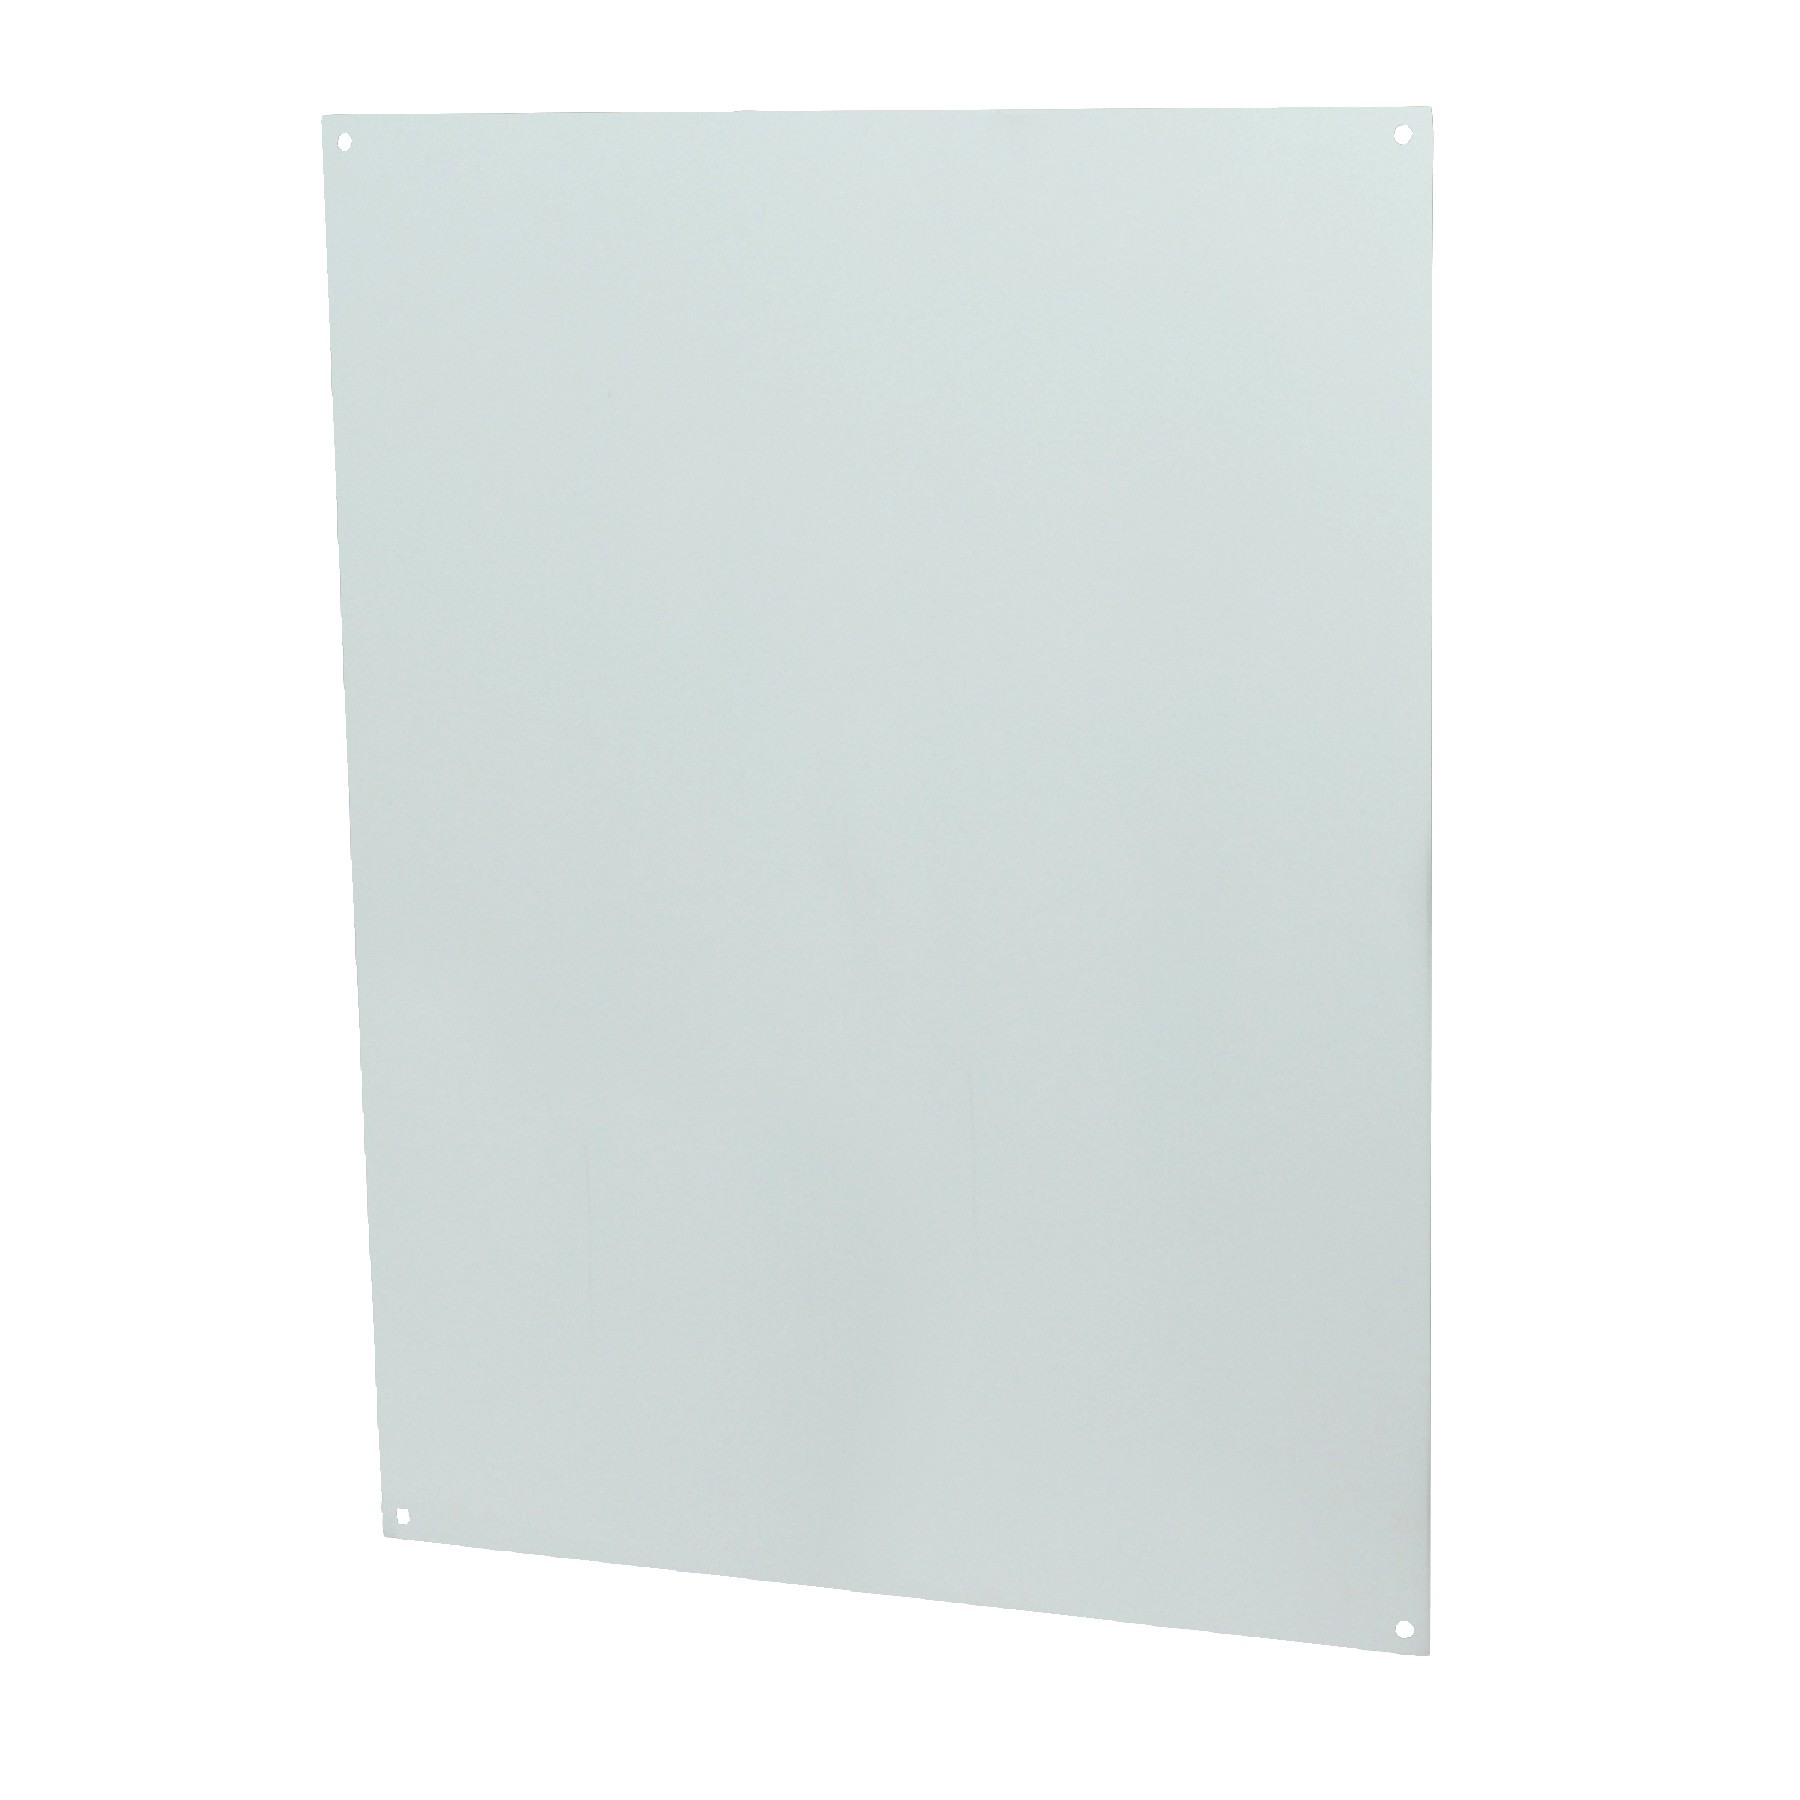 "Carbon Steel Back Panel for 20"" x 16"" Enclosures"